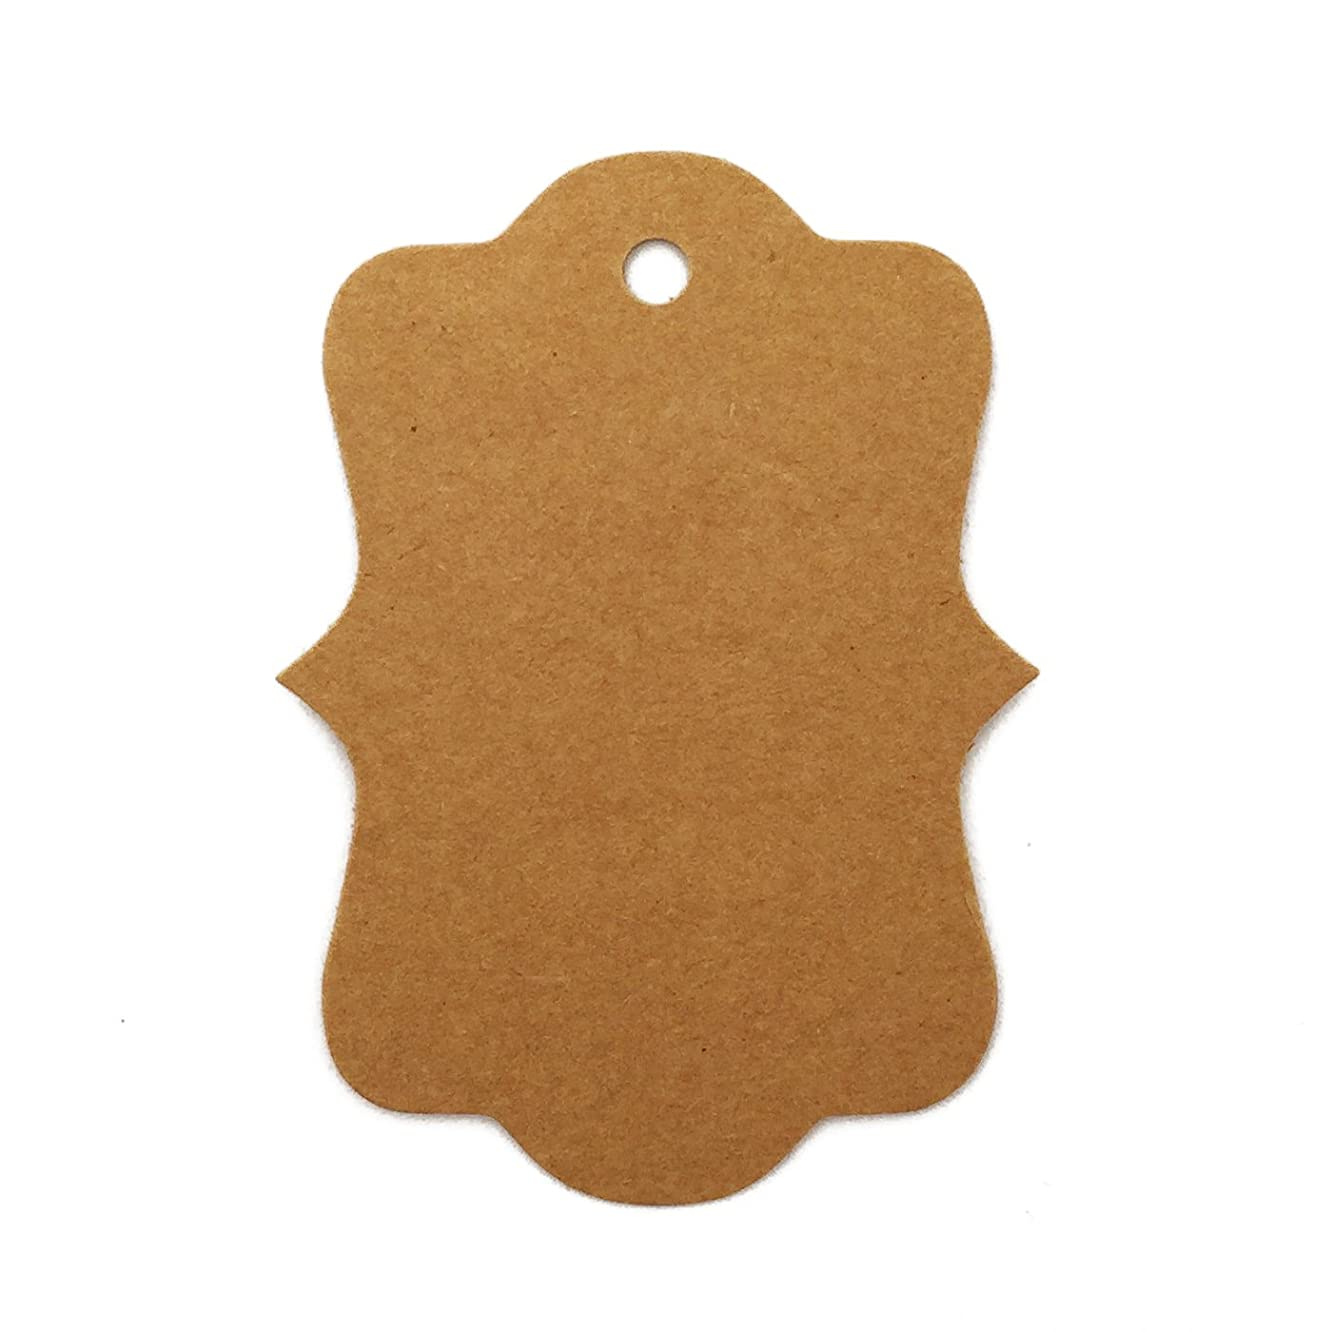 LWR Crafts 100 Hang Tags Antique Border with Jute Twines 100ft (2